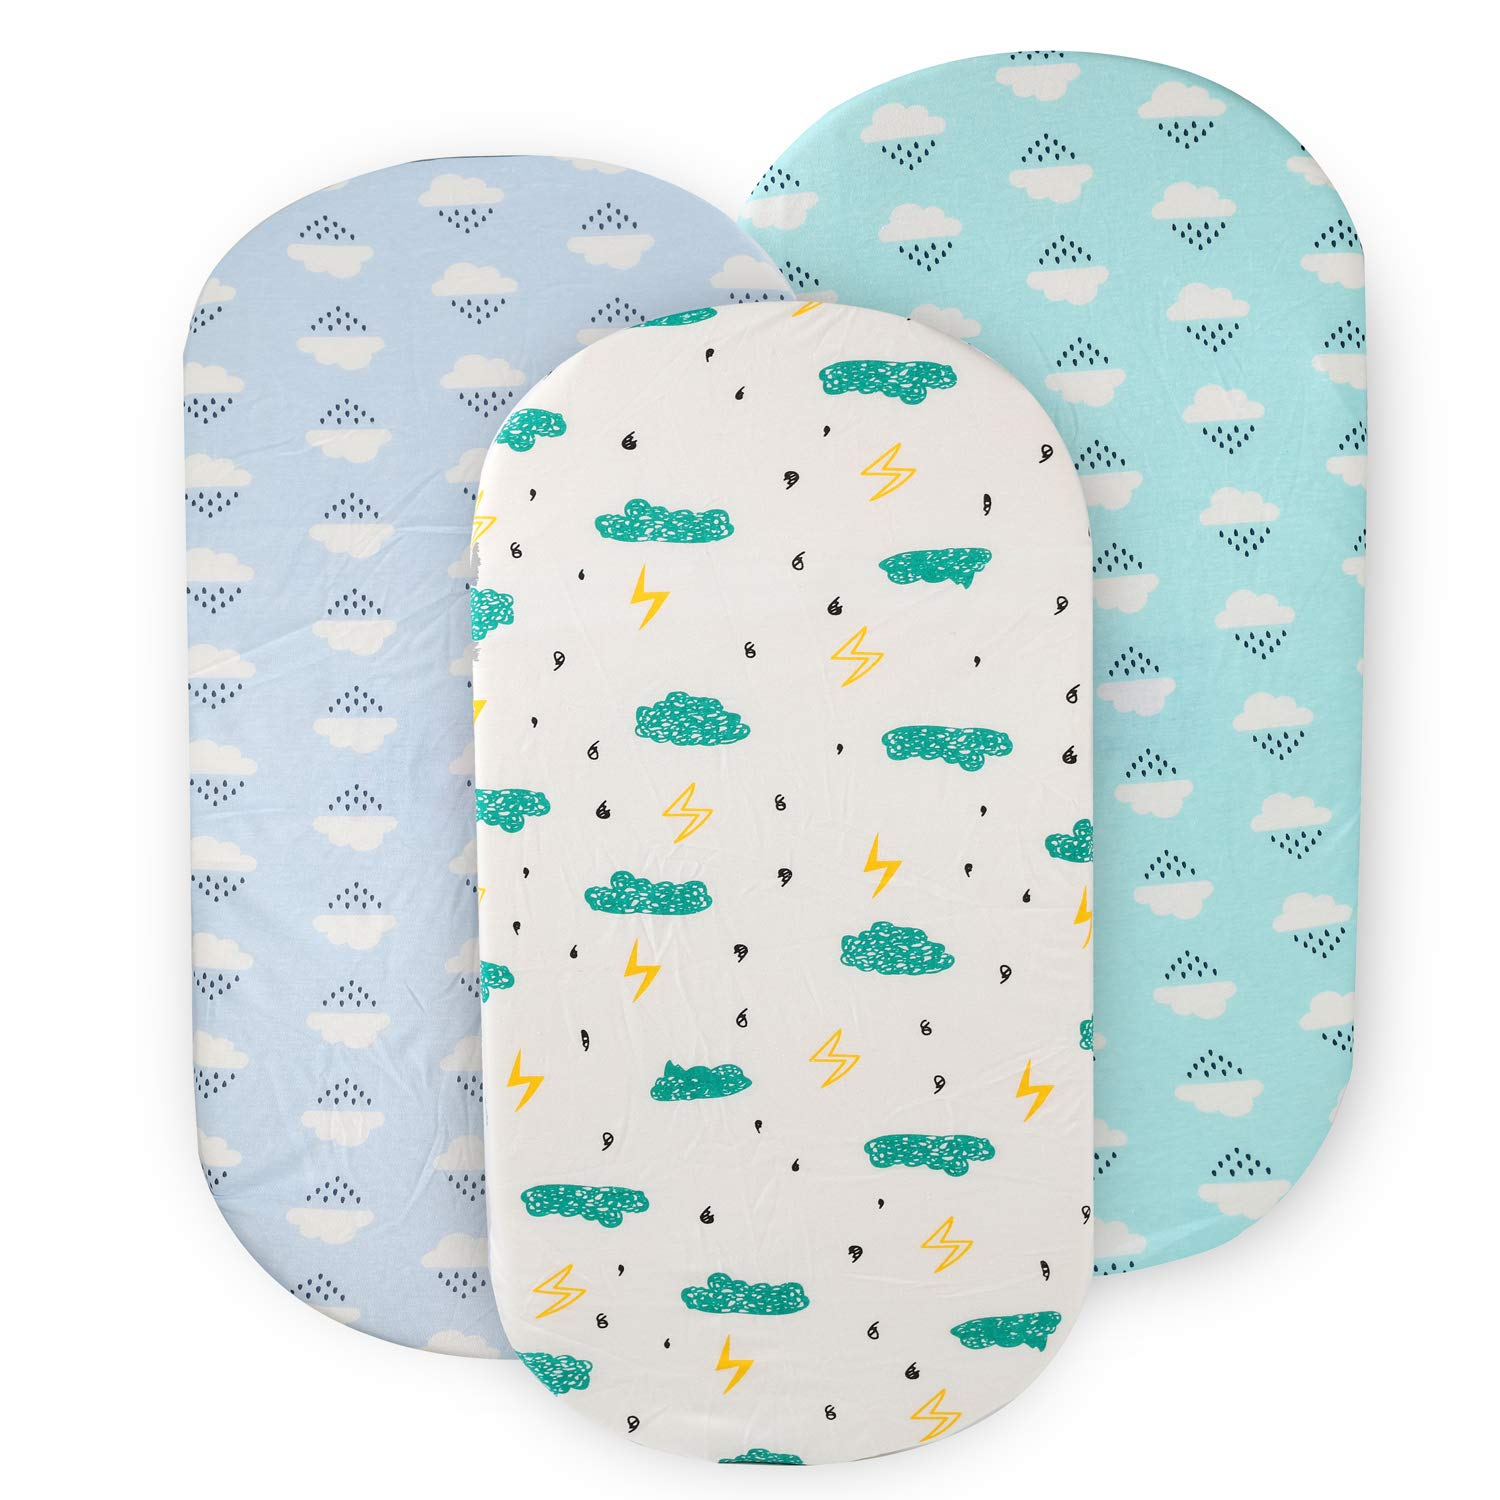 Bassinet Sheet Set 3 Pack 100% Jersey Cotton Super Soft for Baby Boy Girl, Fitted Sheet for Oval, Rectangle or Hourglass Bassinet Mattress, Cloud and Raindrop Print, White Blue and Green by Onacosht